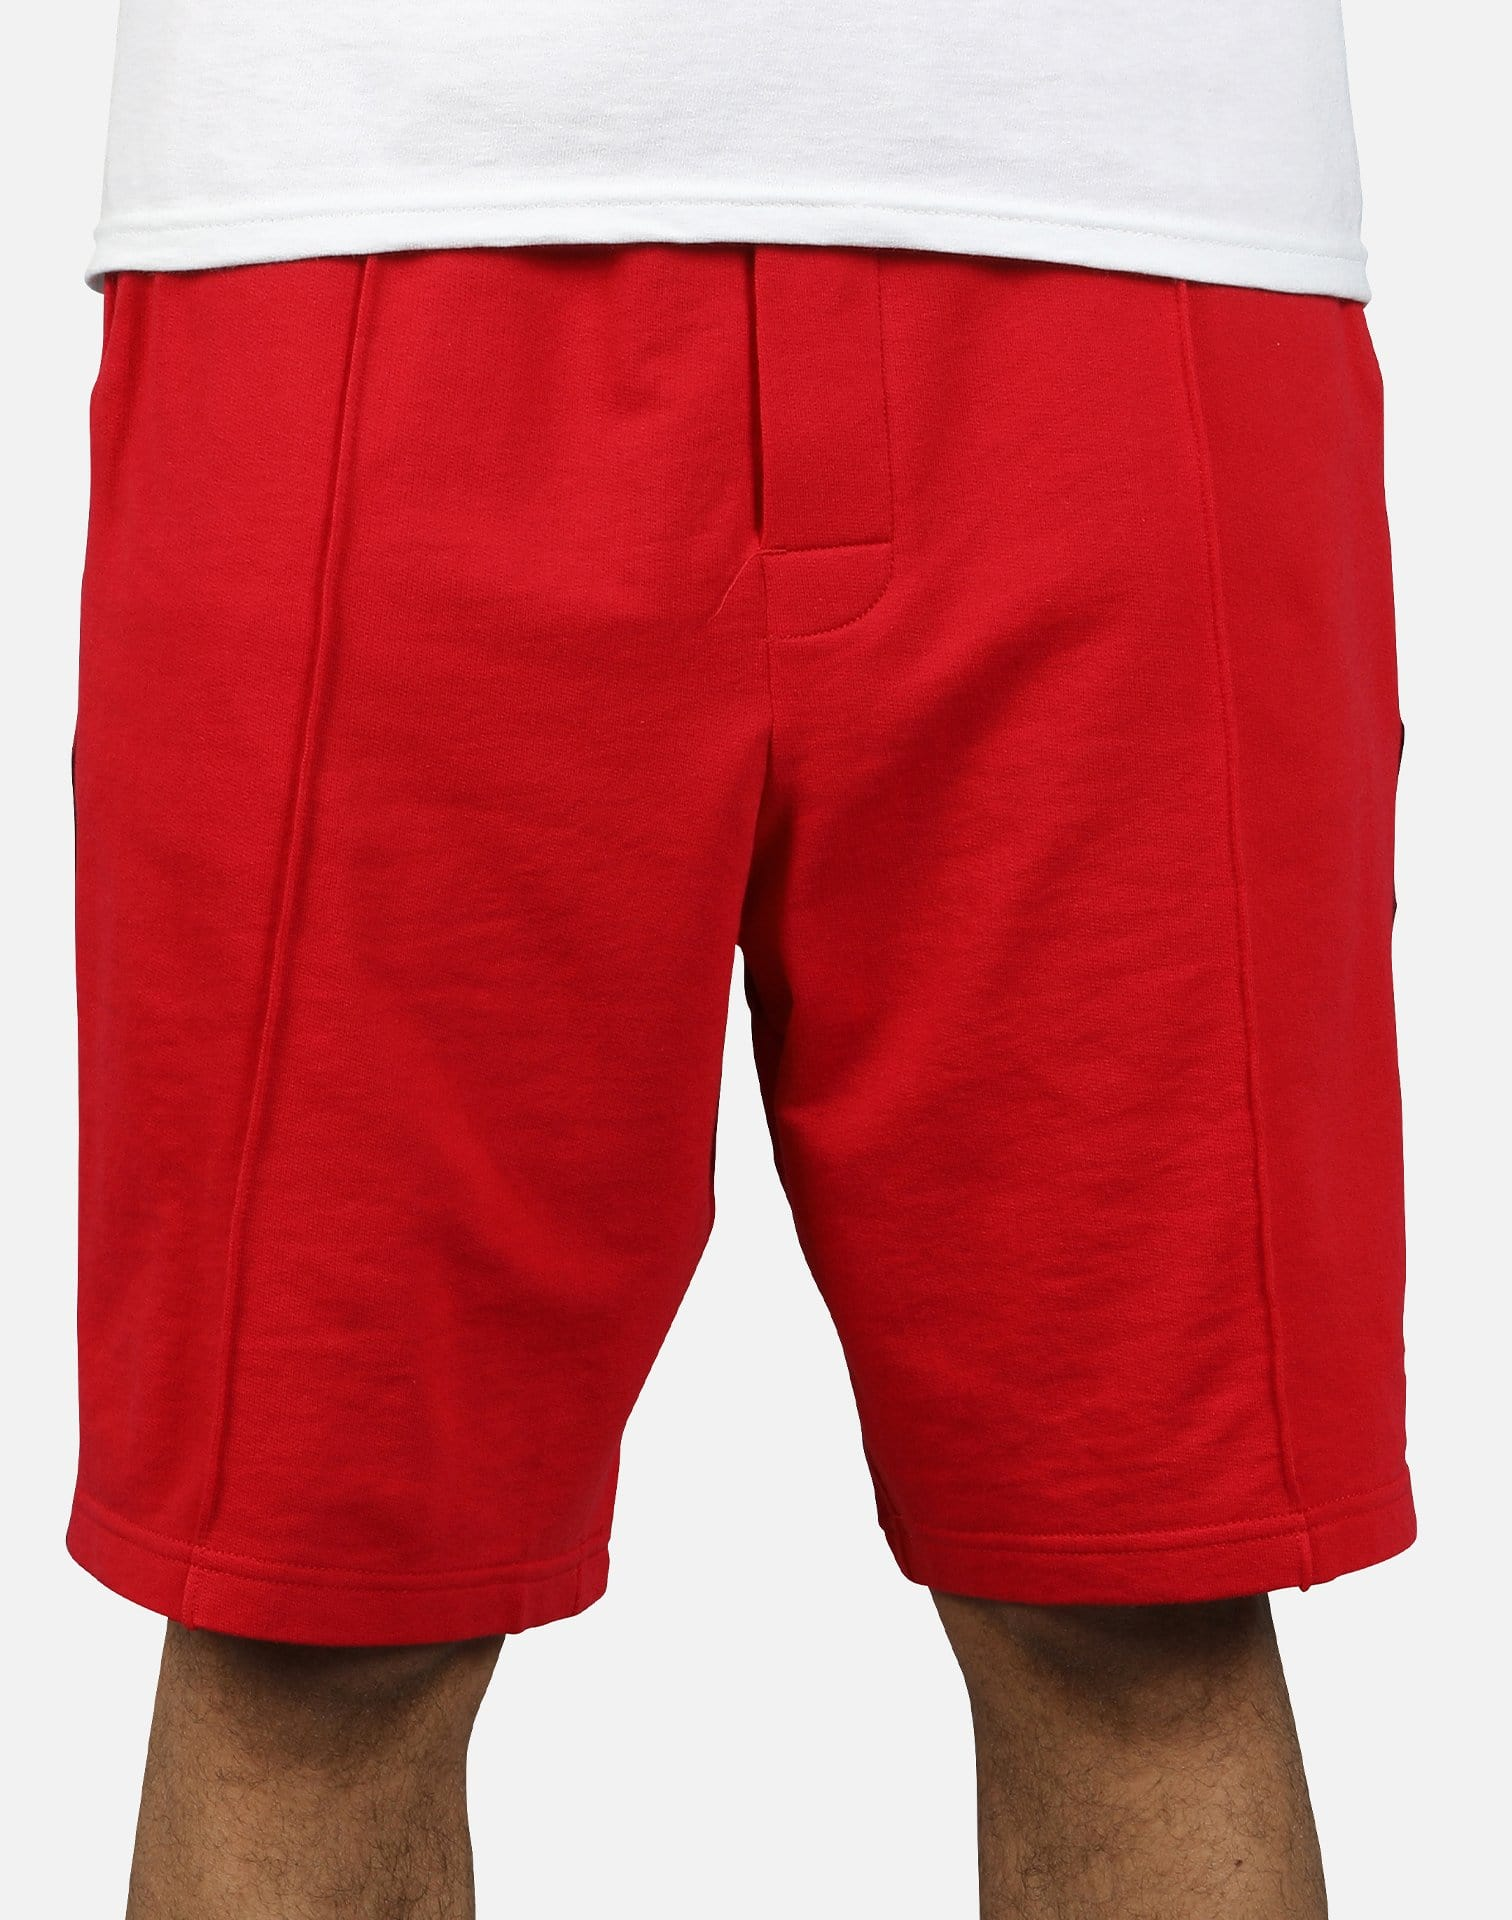 Tommy Hilfiger Men's Taped Shorts